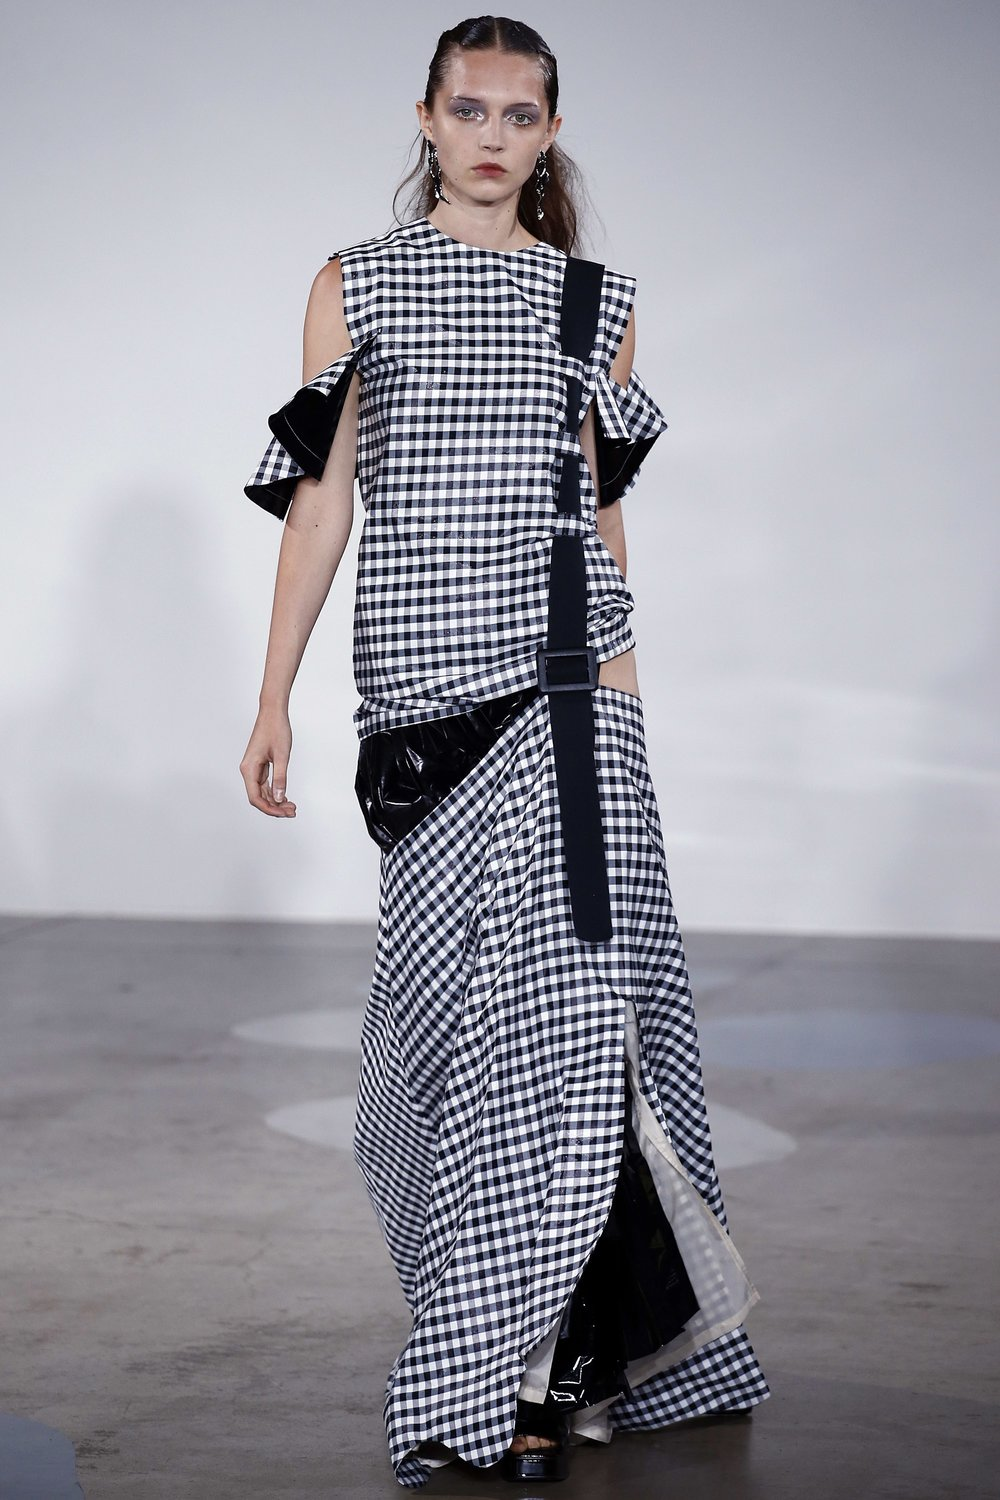 AIN'T NO PARTY LIKE A TOGA PARTY - Just when I think I've cured my gingham addiction, Japanese label Toga pull me right back in...